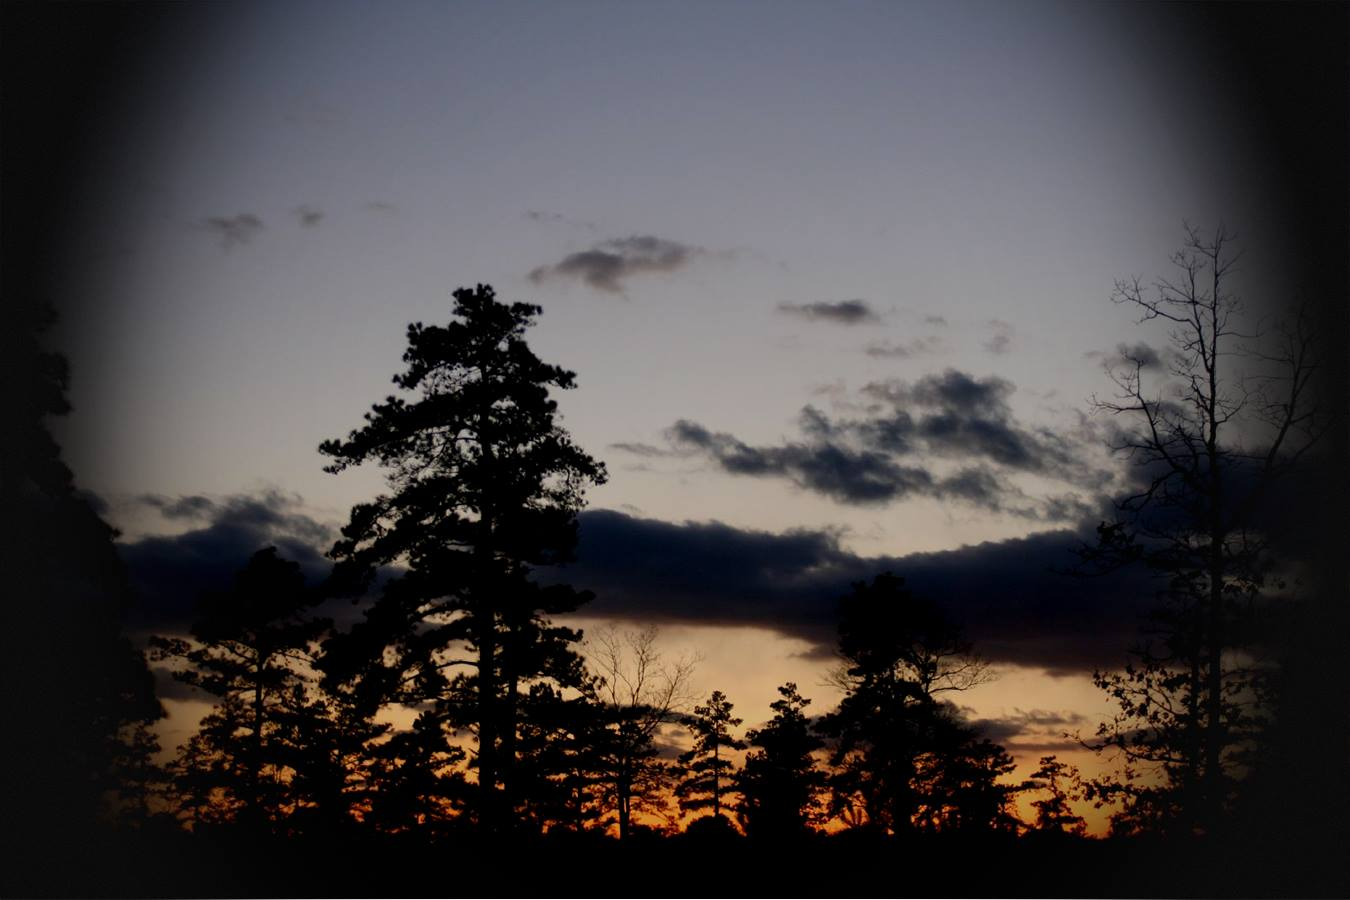 Sunset through the trees of the Long Island Pine Barrens